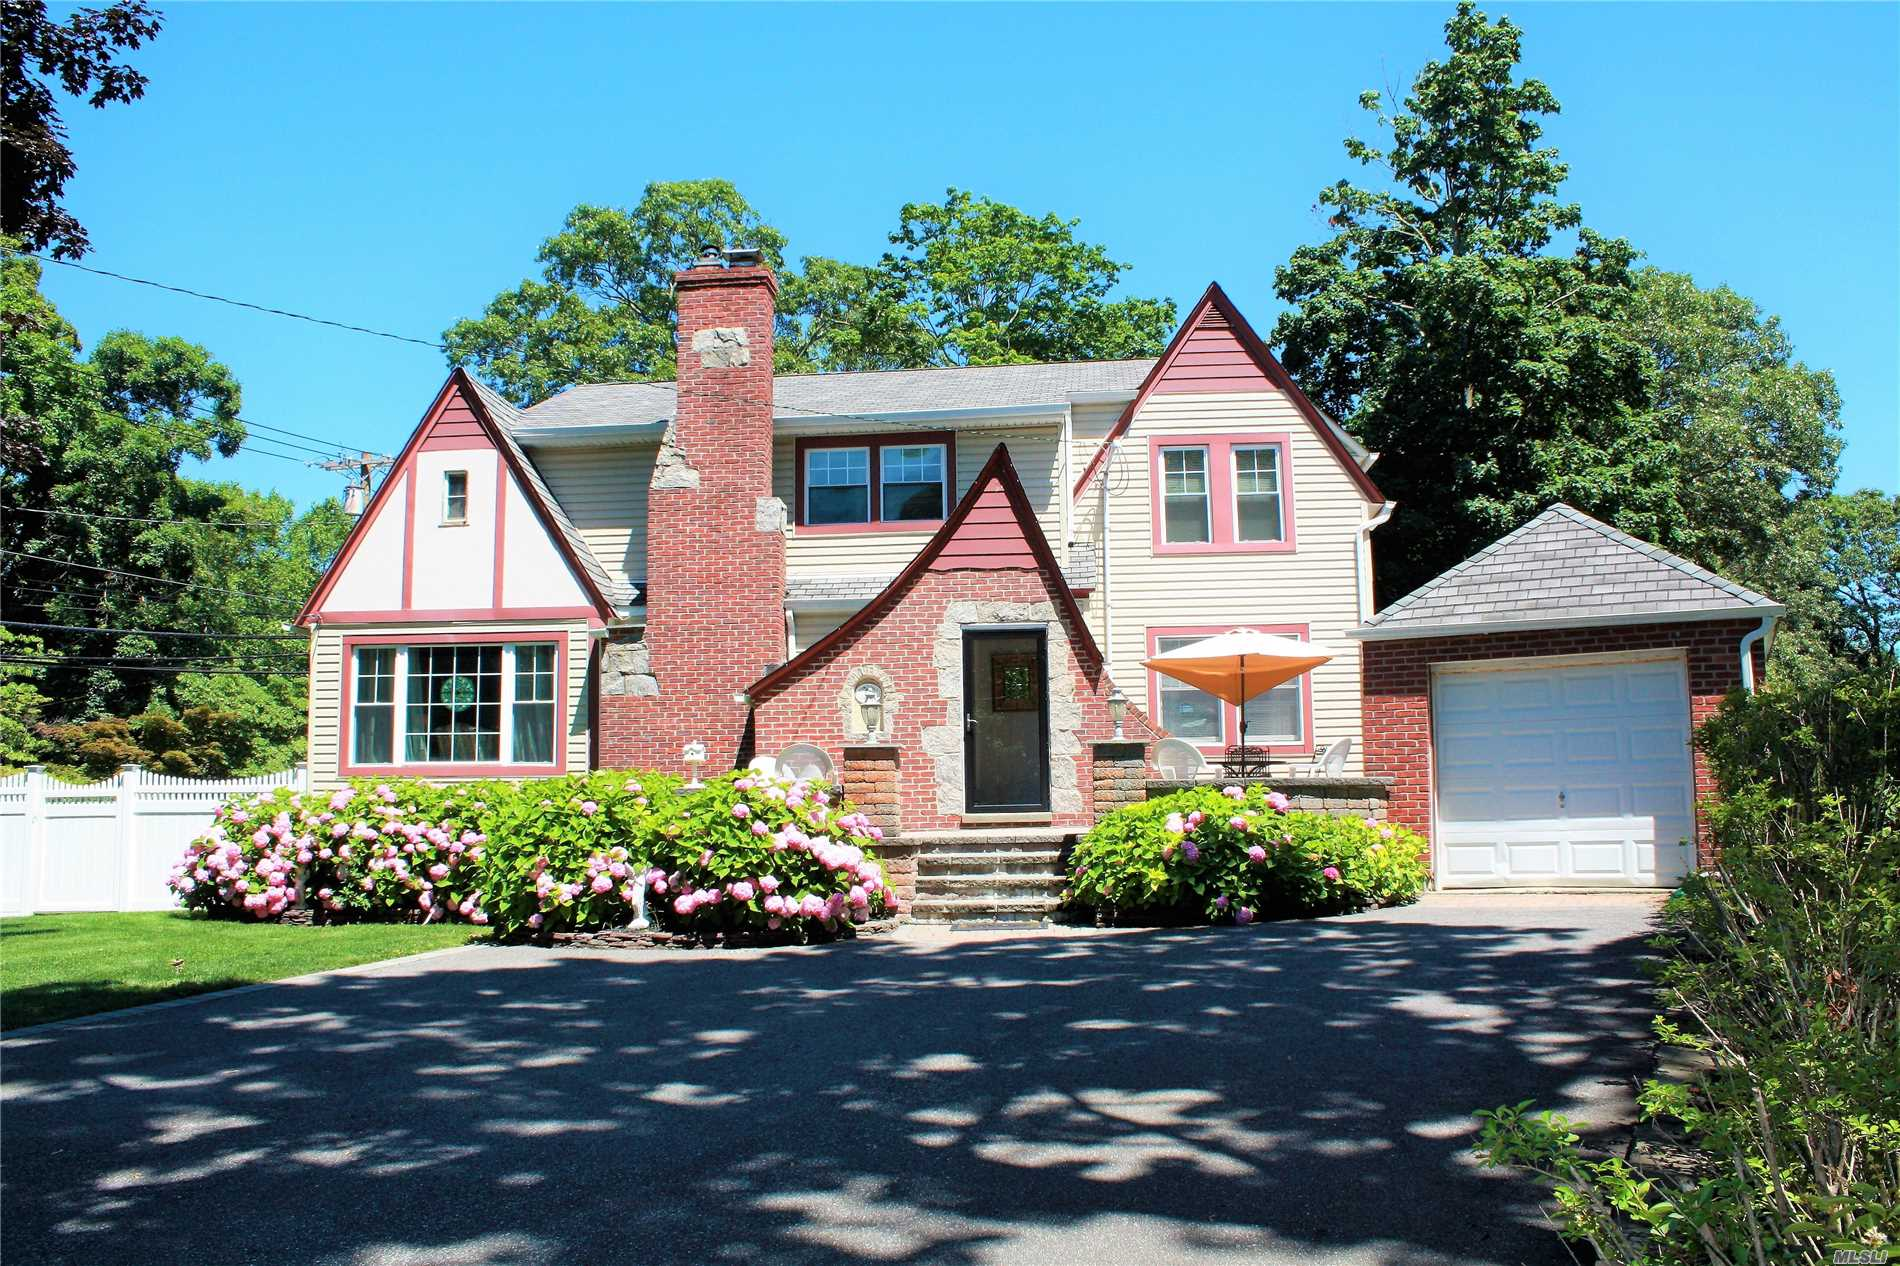 One Of A Kind Unique Tudor -Renovated, New Double Pane Windows, New Roof, New Siding. Extensive Paver Entry & Private Paver Patio. Completely Pvc Fenced Yard. Freshly Painted. Close To Beach.